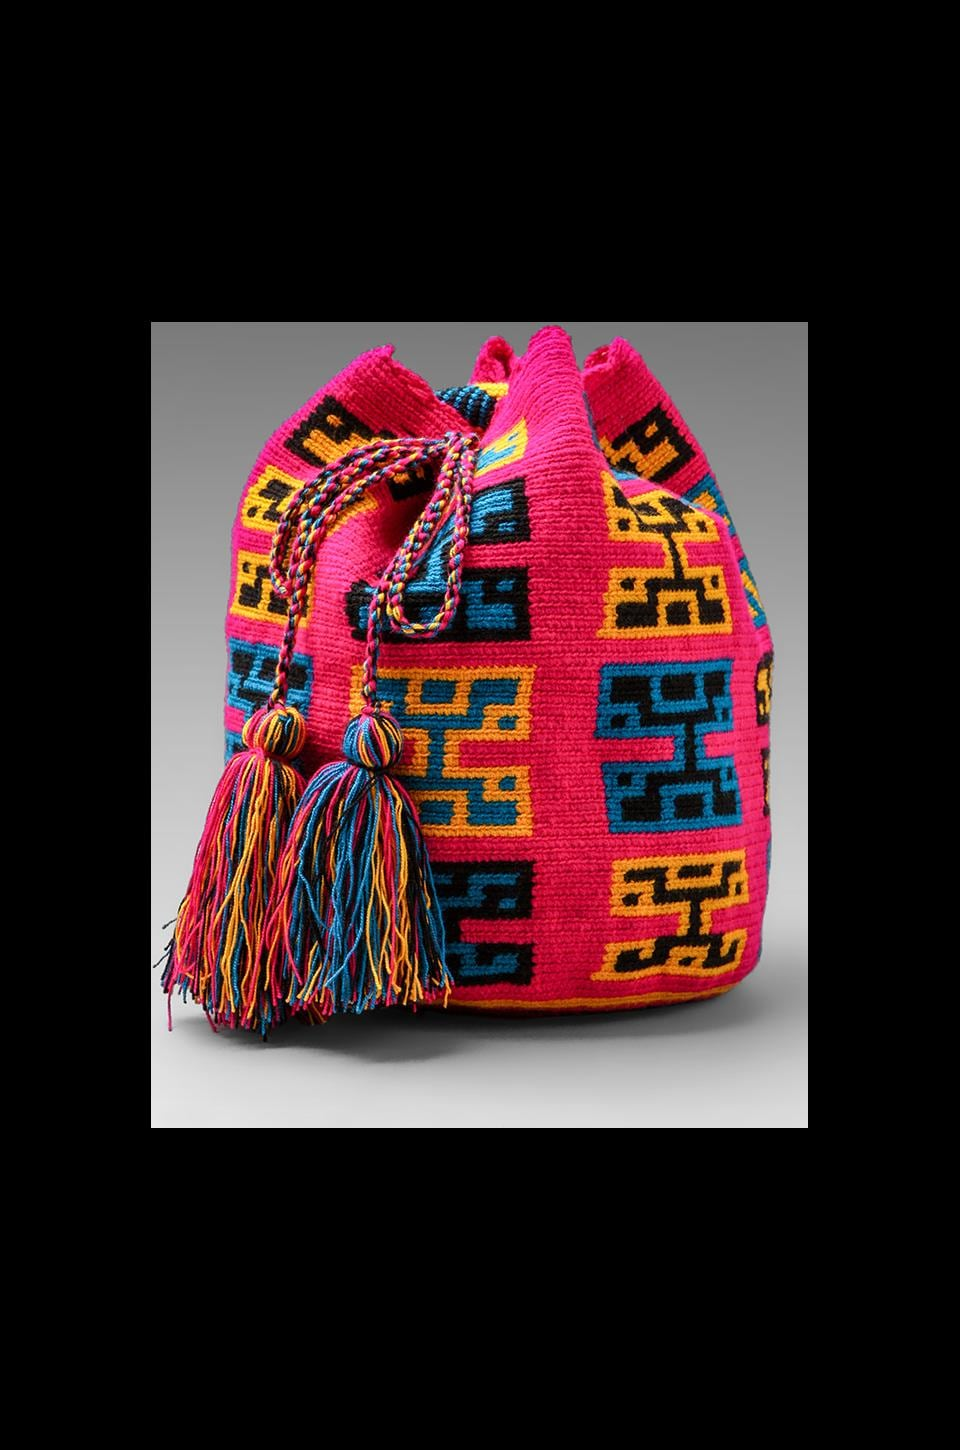 STELA 9 Pachamama Woven Bucket Bag in Pink